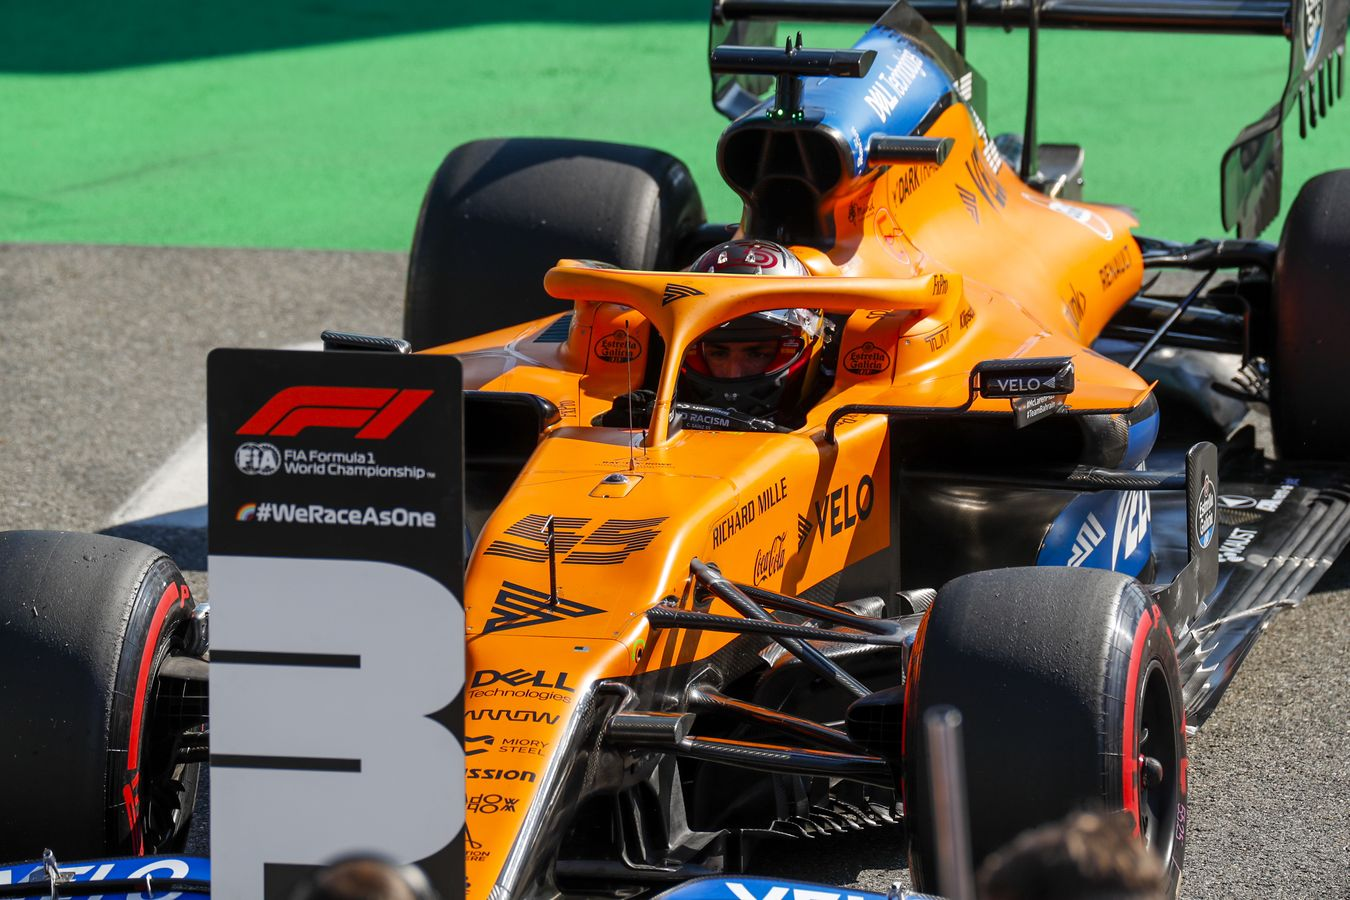 Mclaren Racing 2020 Italian Grand Prix Qualifying